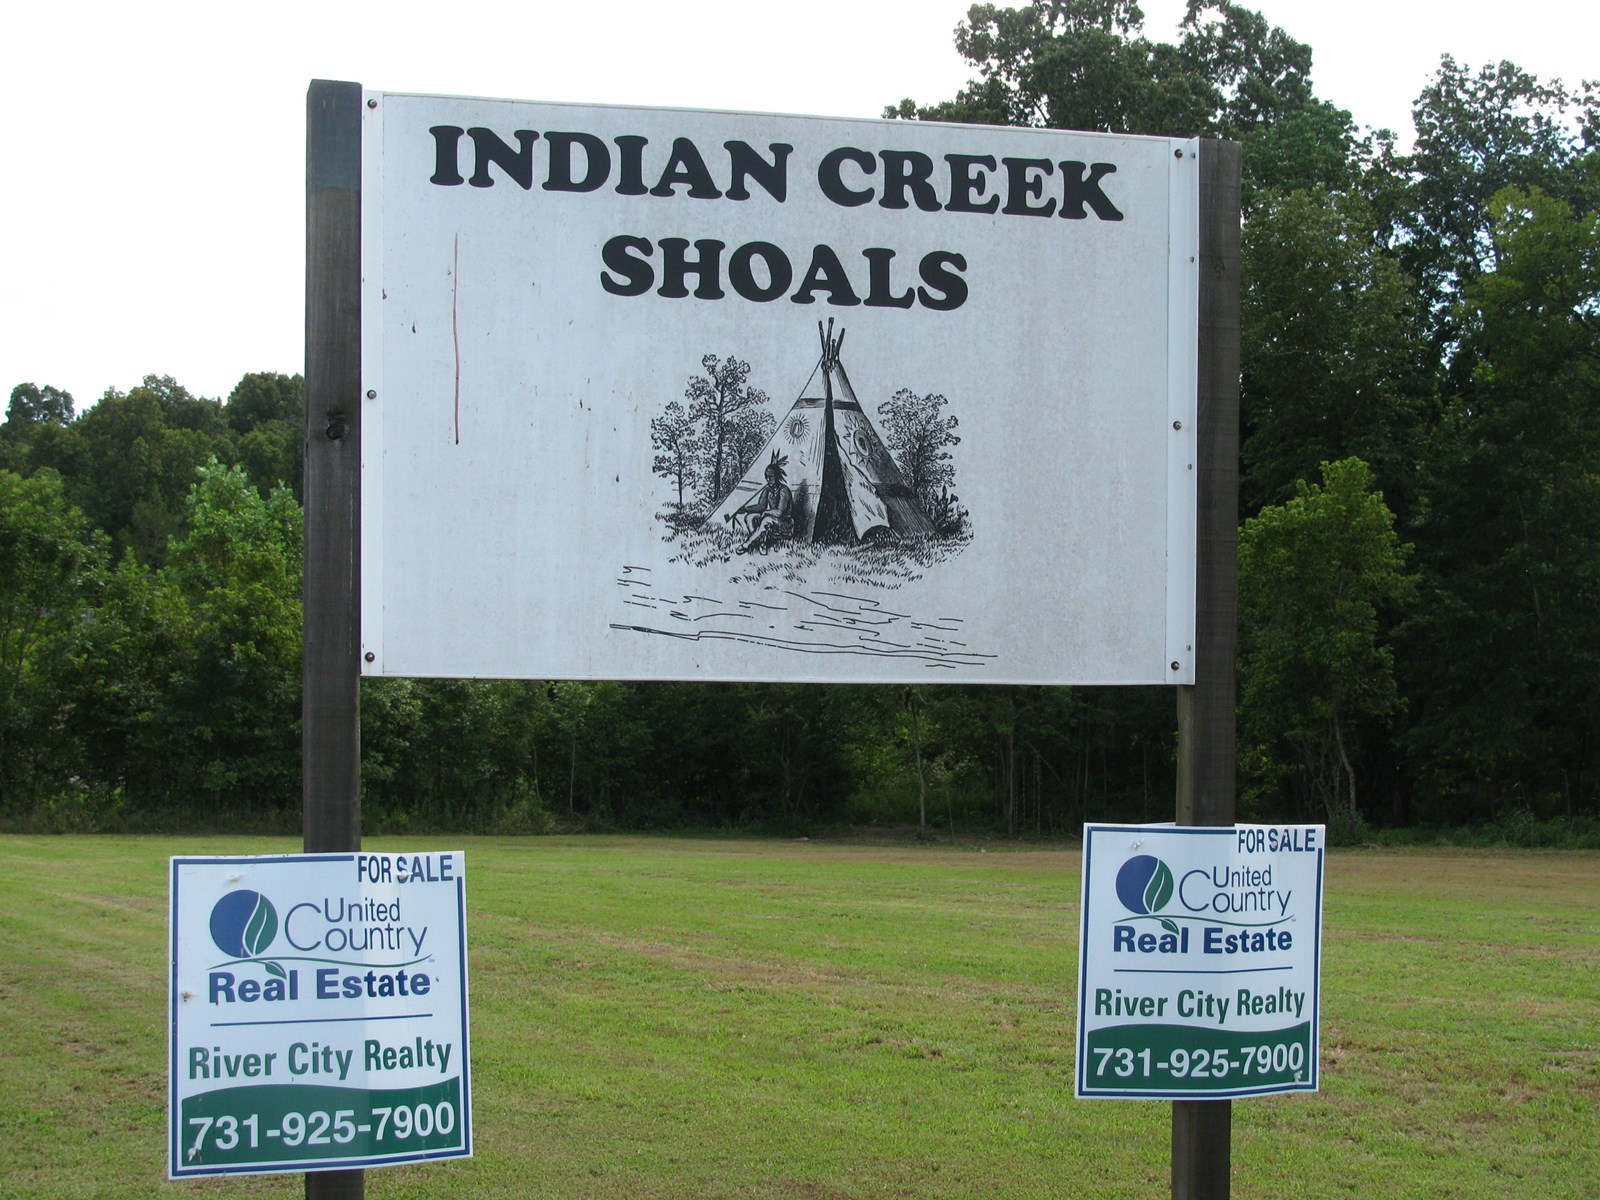 GREAT KAYAKING ON INDIAN CREEK IN SAVANNAH, TN, LOT FOR SALE